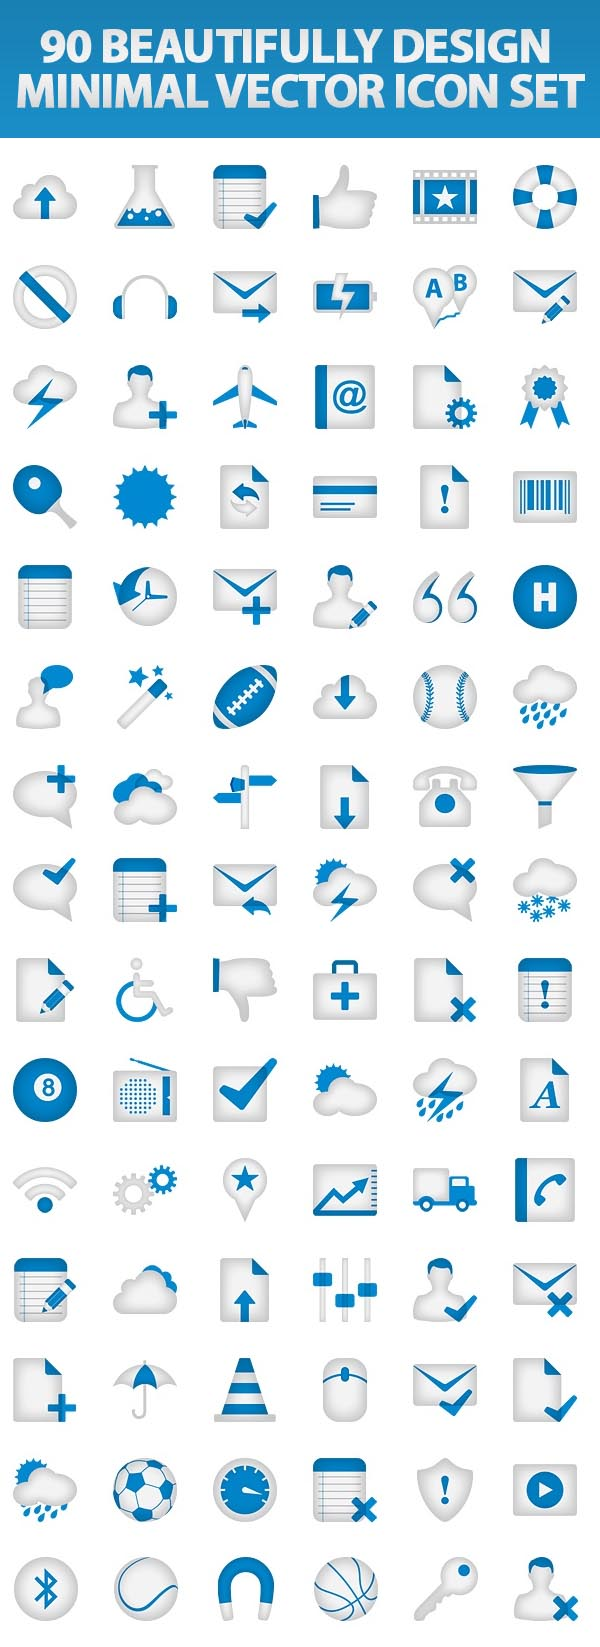 Free Vector Icons Pack 3